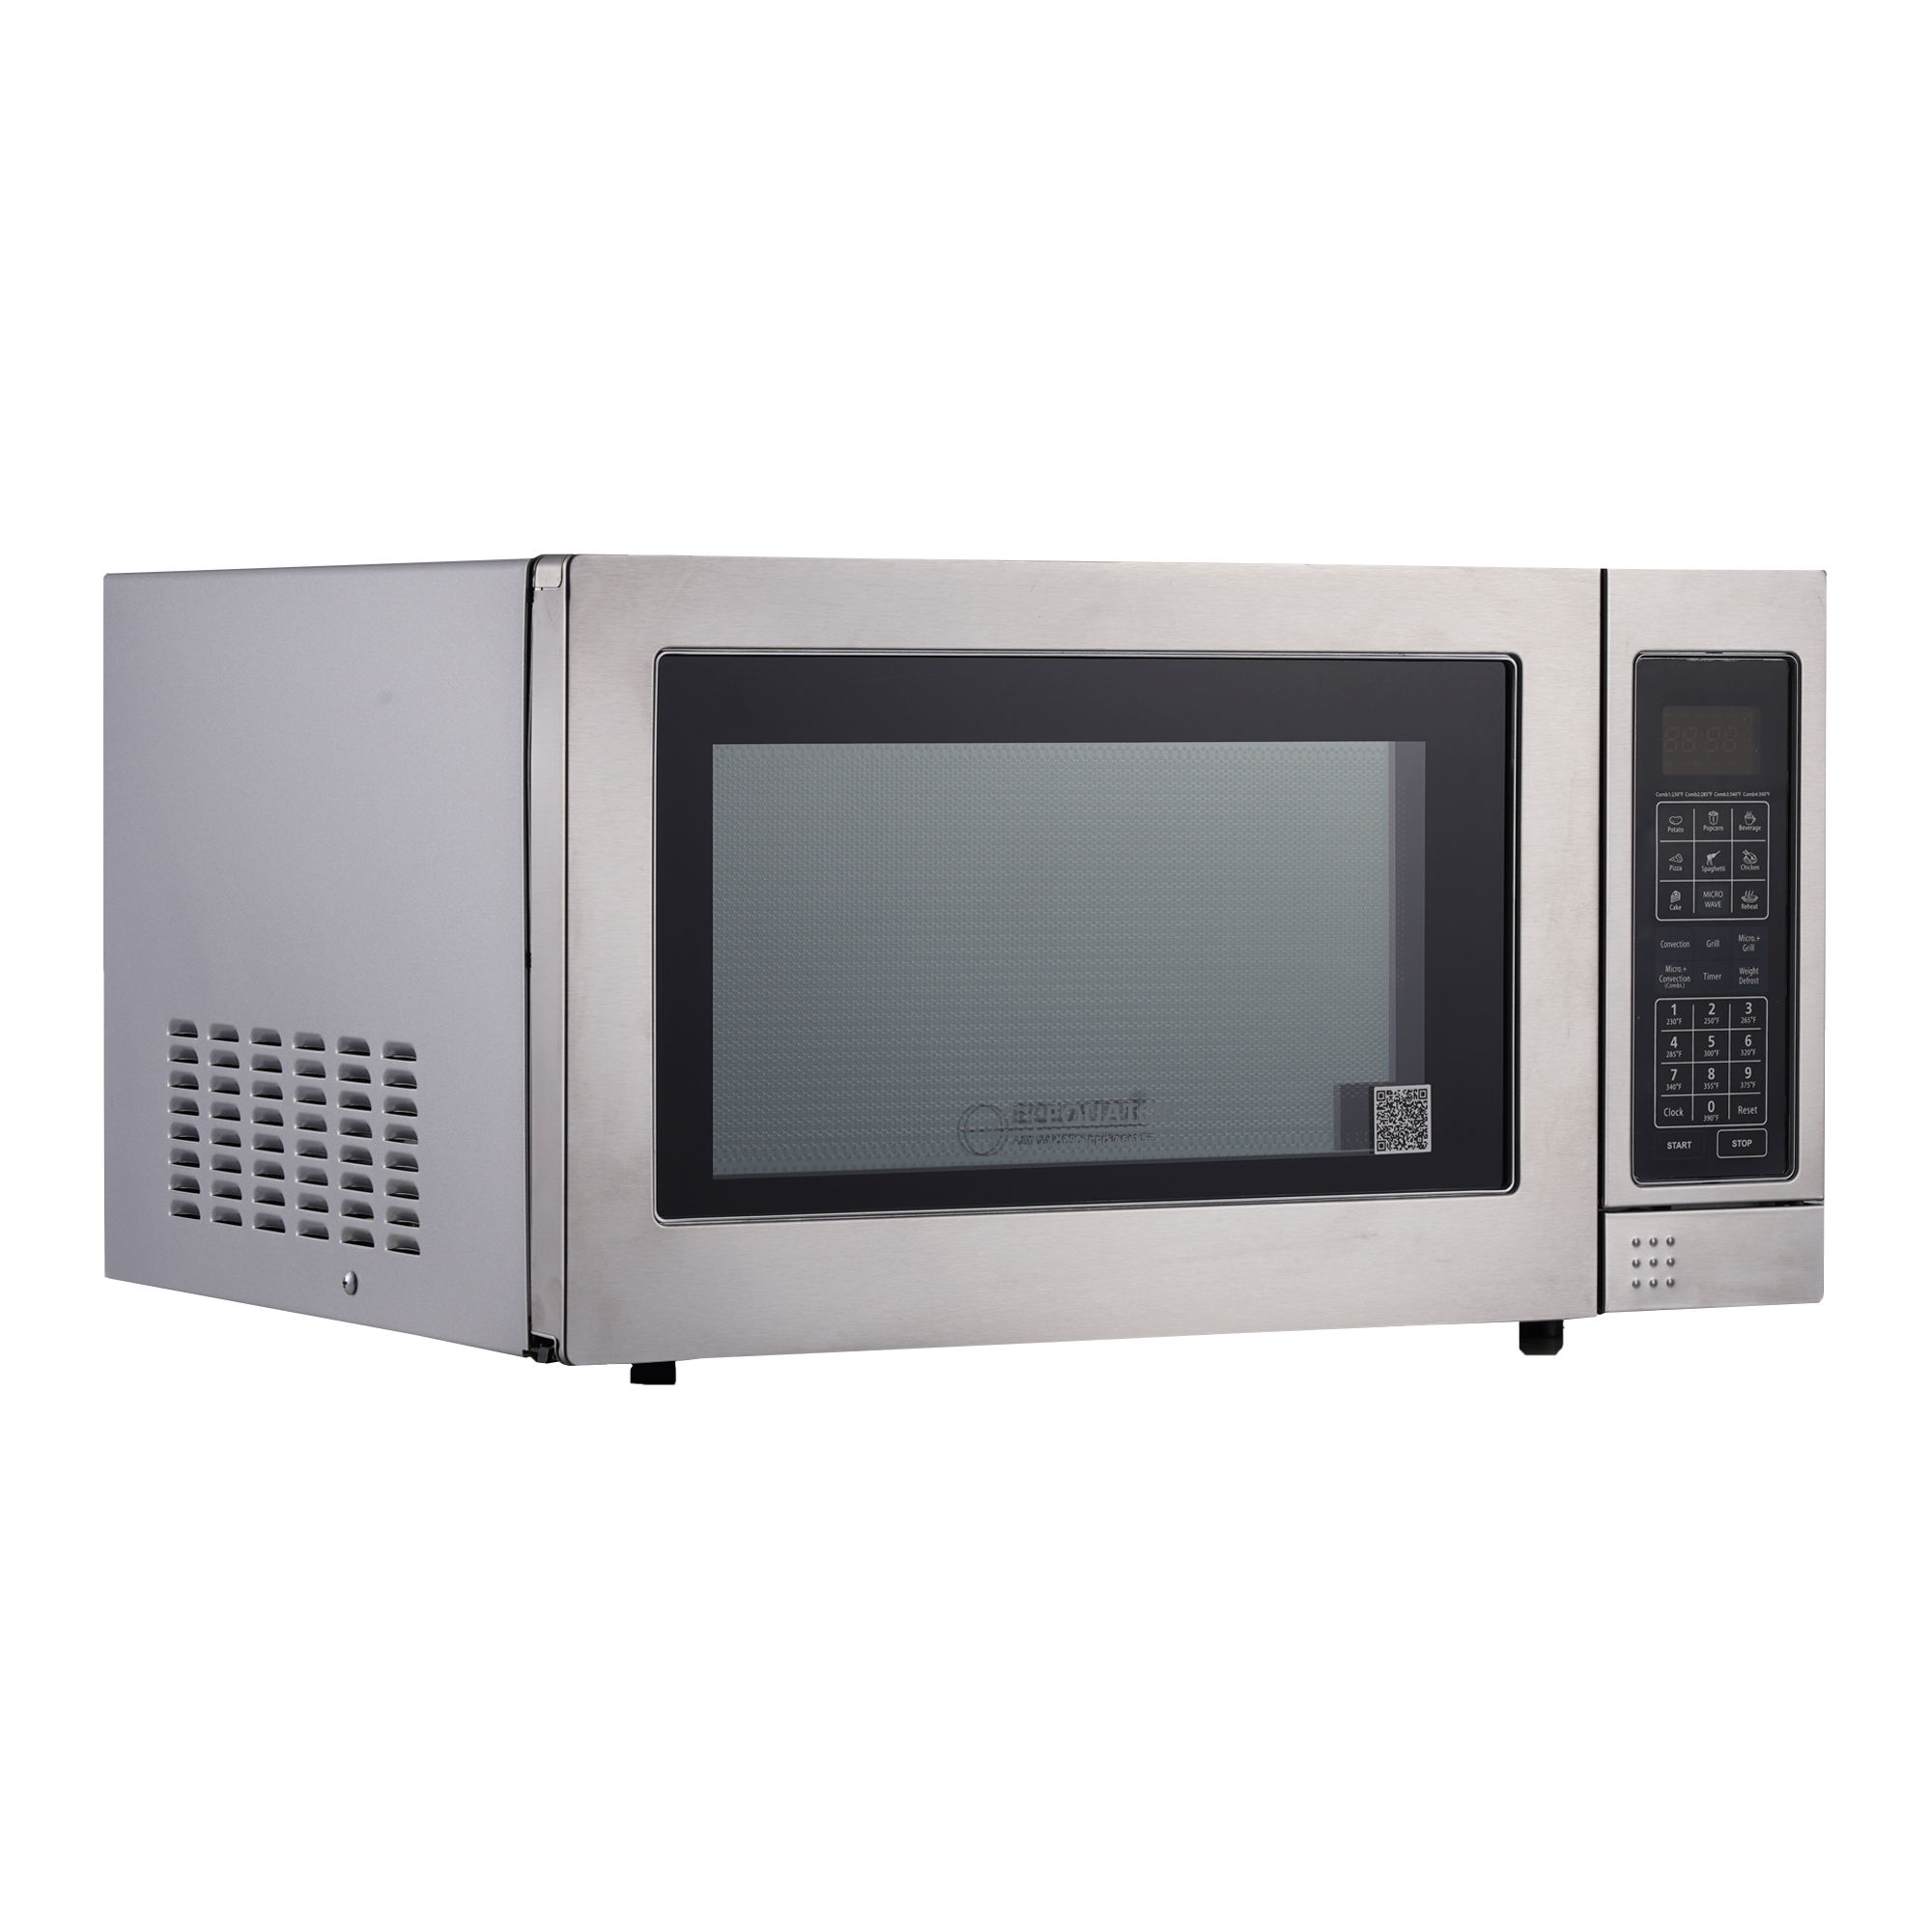 3-in-1 Microwave + Grill + Convertion Oven